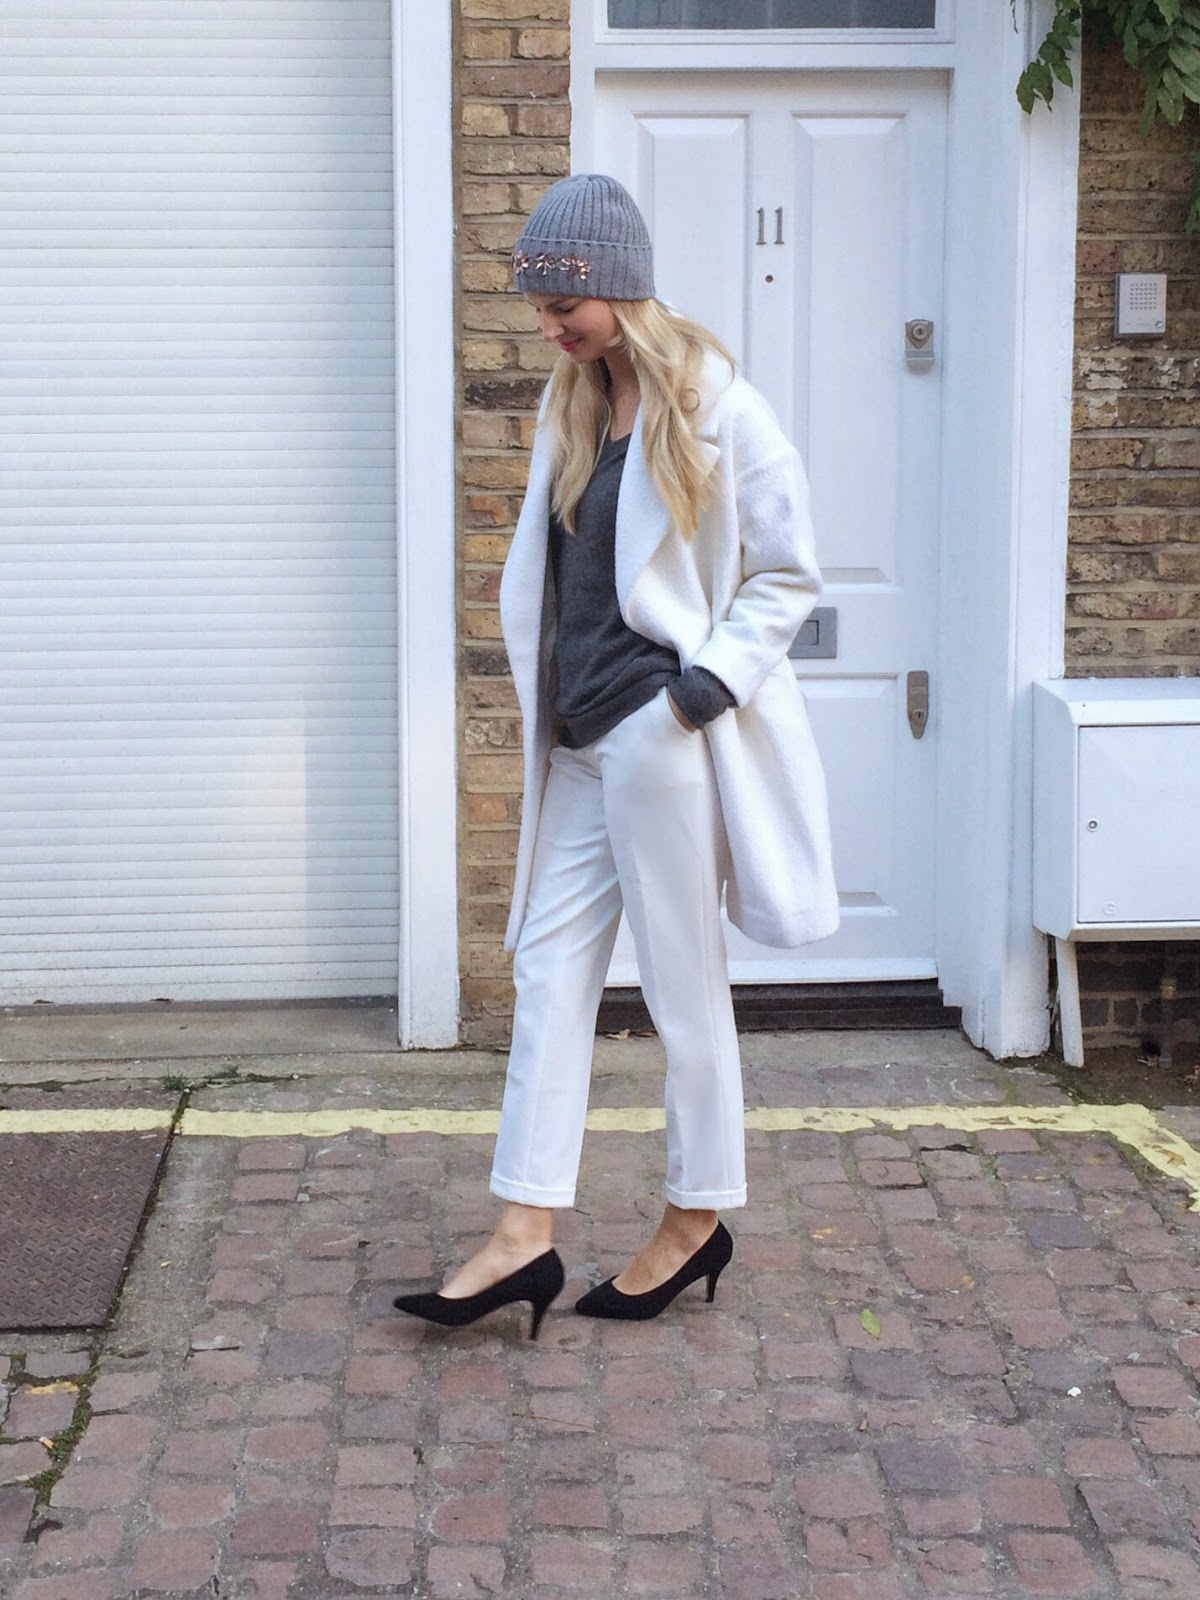 street style london, winter staples, winter look, lookbook, london winter look, asos slim leg trousers, black heels, kurt geiger black heels